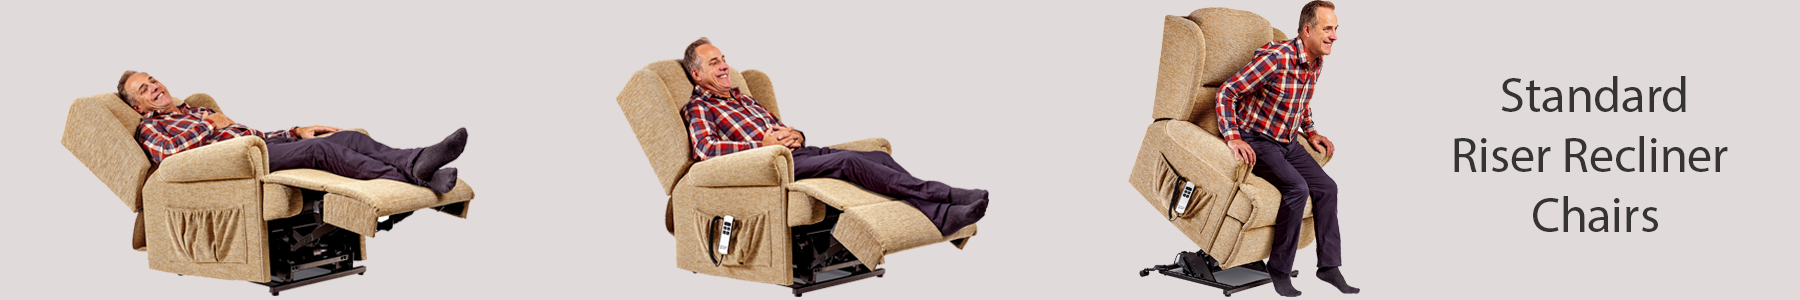 Standard Riser Recliner Chairs